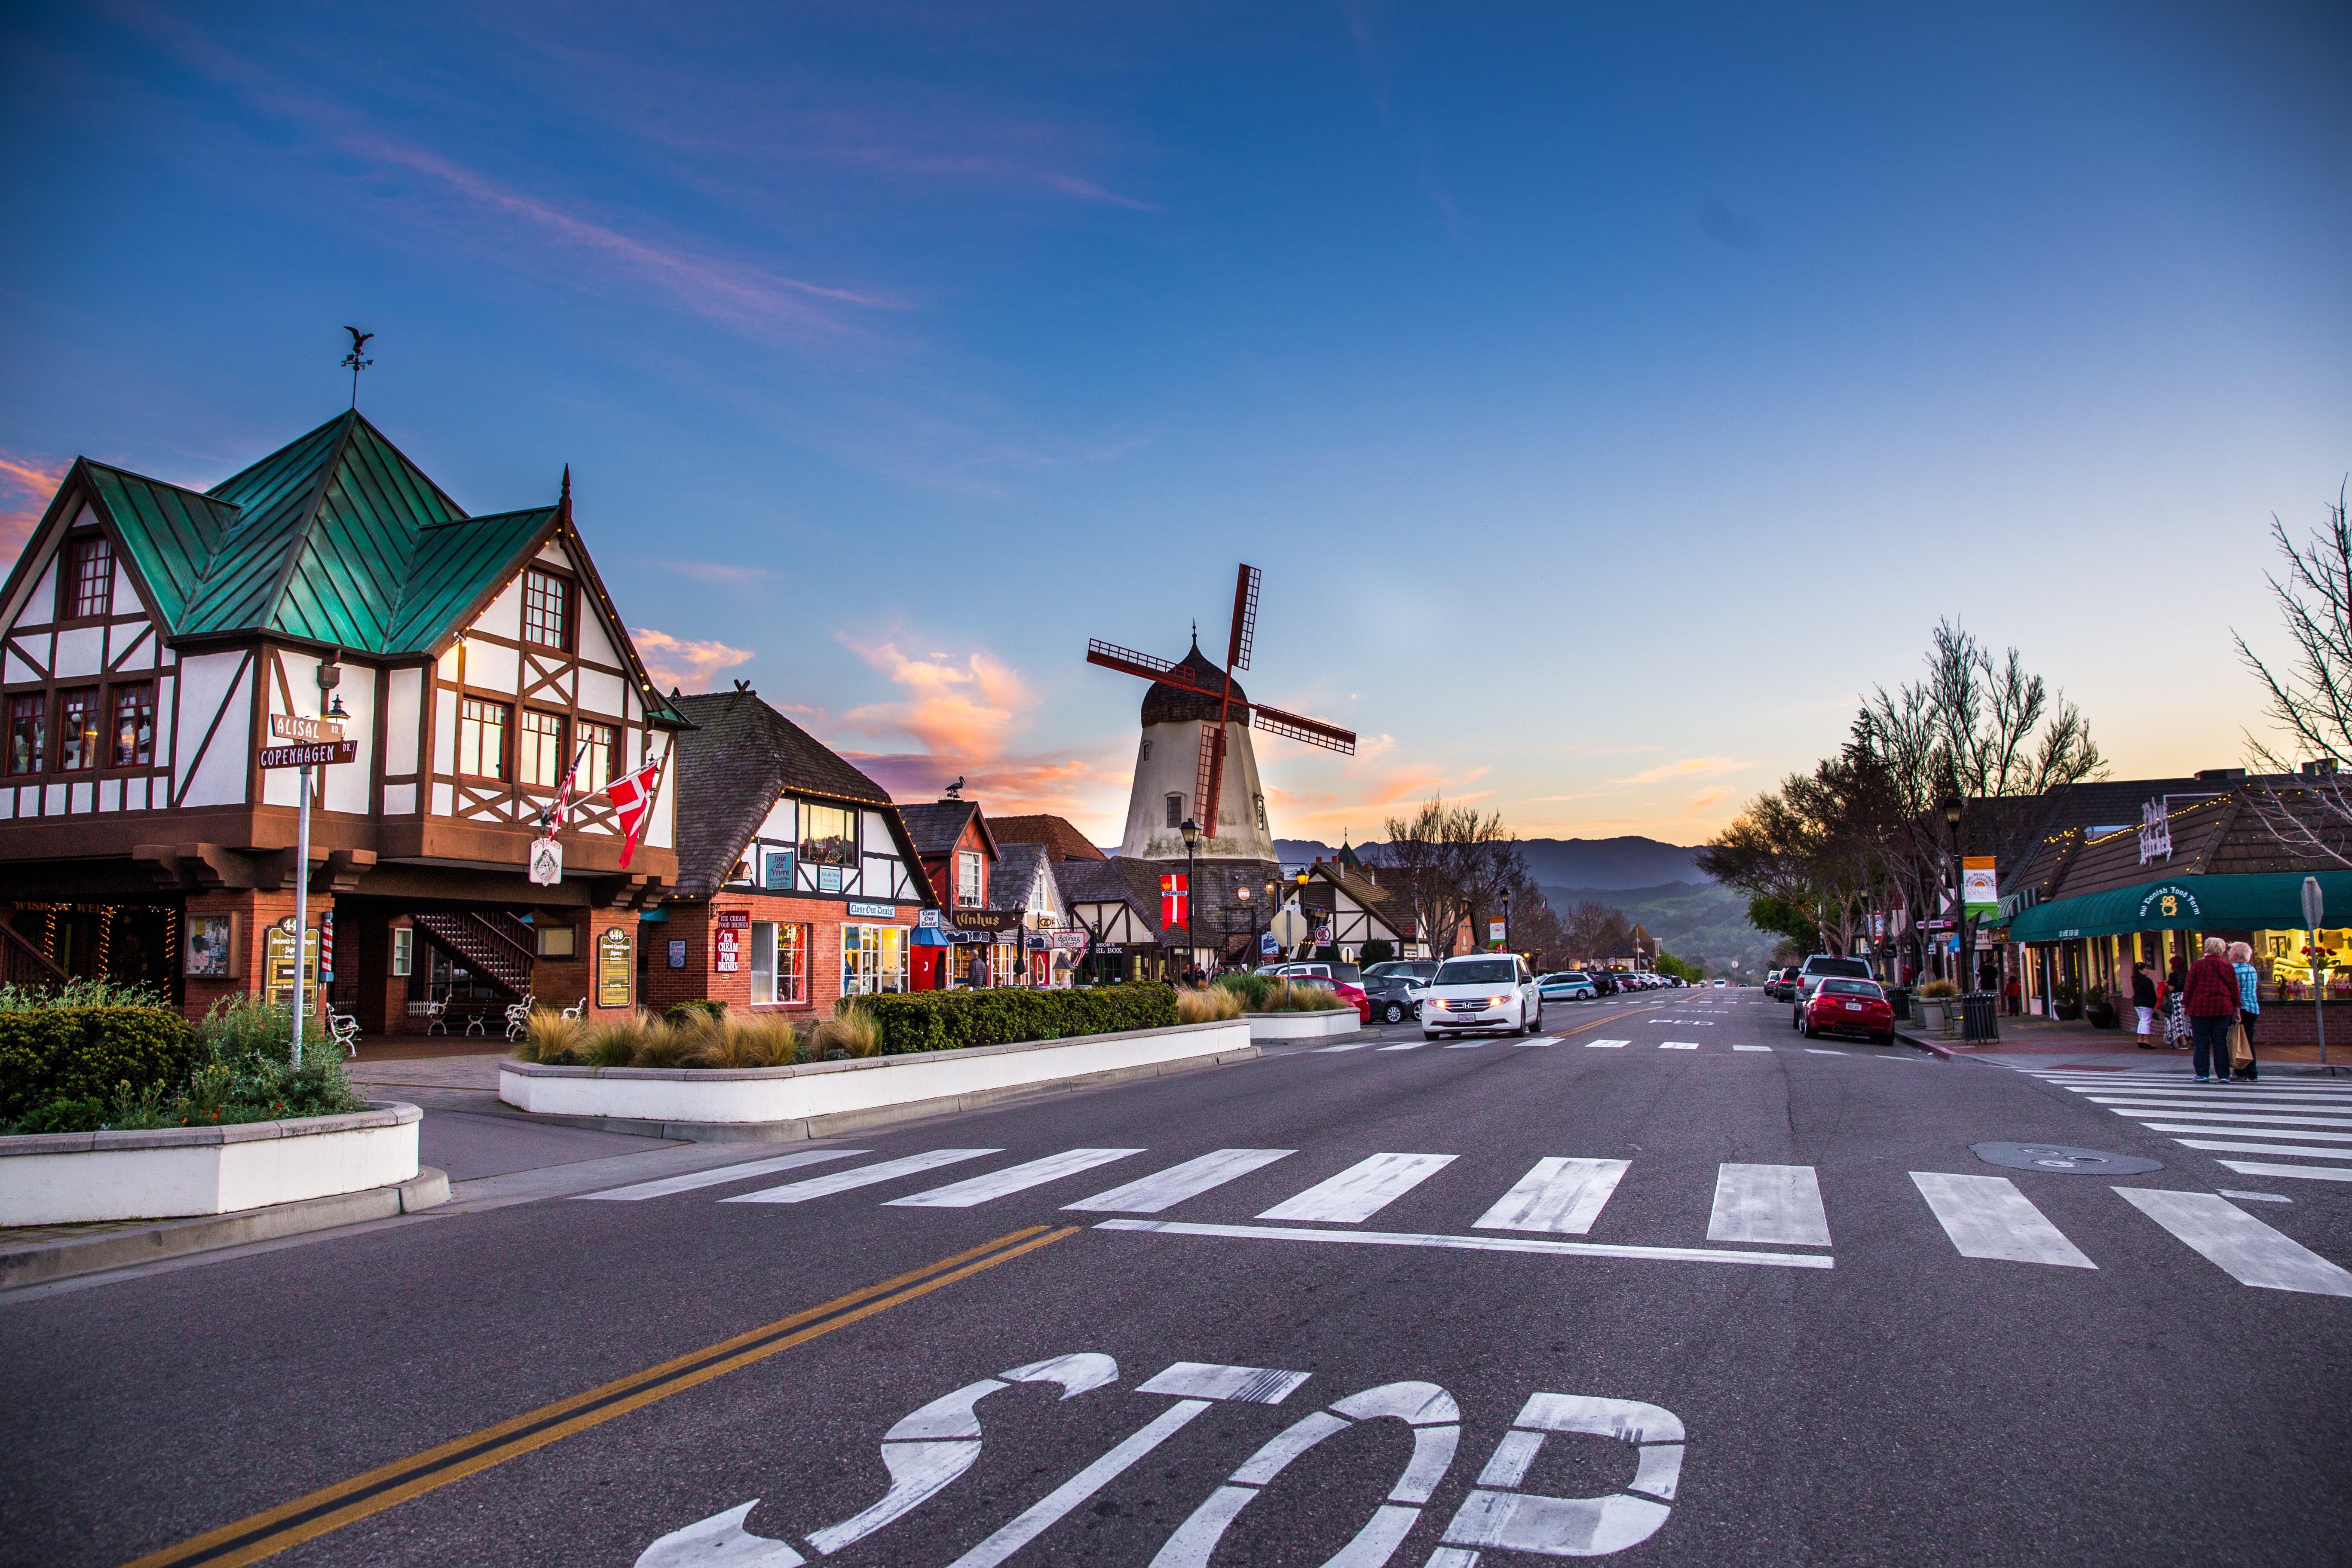 things to do in solvang, solvang, california, best places in solvang, traveller, travelblog, solvang travel blog, The Solvang Restaurant Aebleskivers, paulas pancakes solvang, olsen bakery, Solvang Copenhagen drive, Ostrichland Solvang, Must see places in Solvang, Solvang The Denmark of California, solvang ca, solvang gift shops, best restaurants in solvang